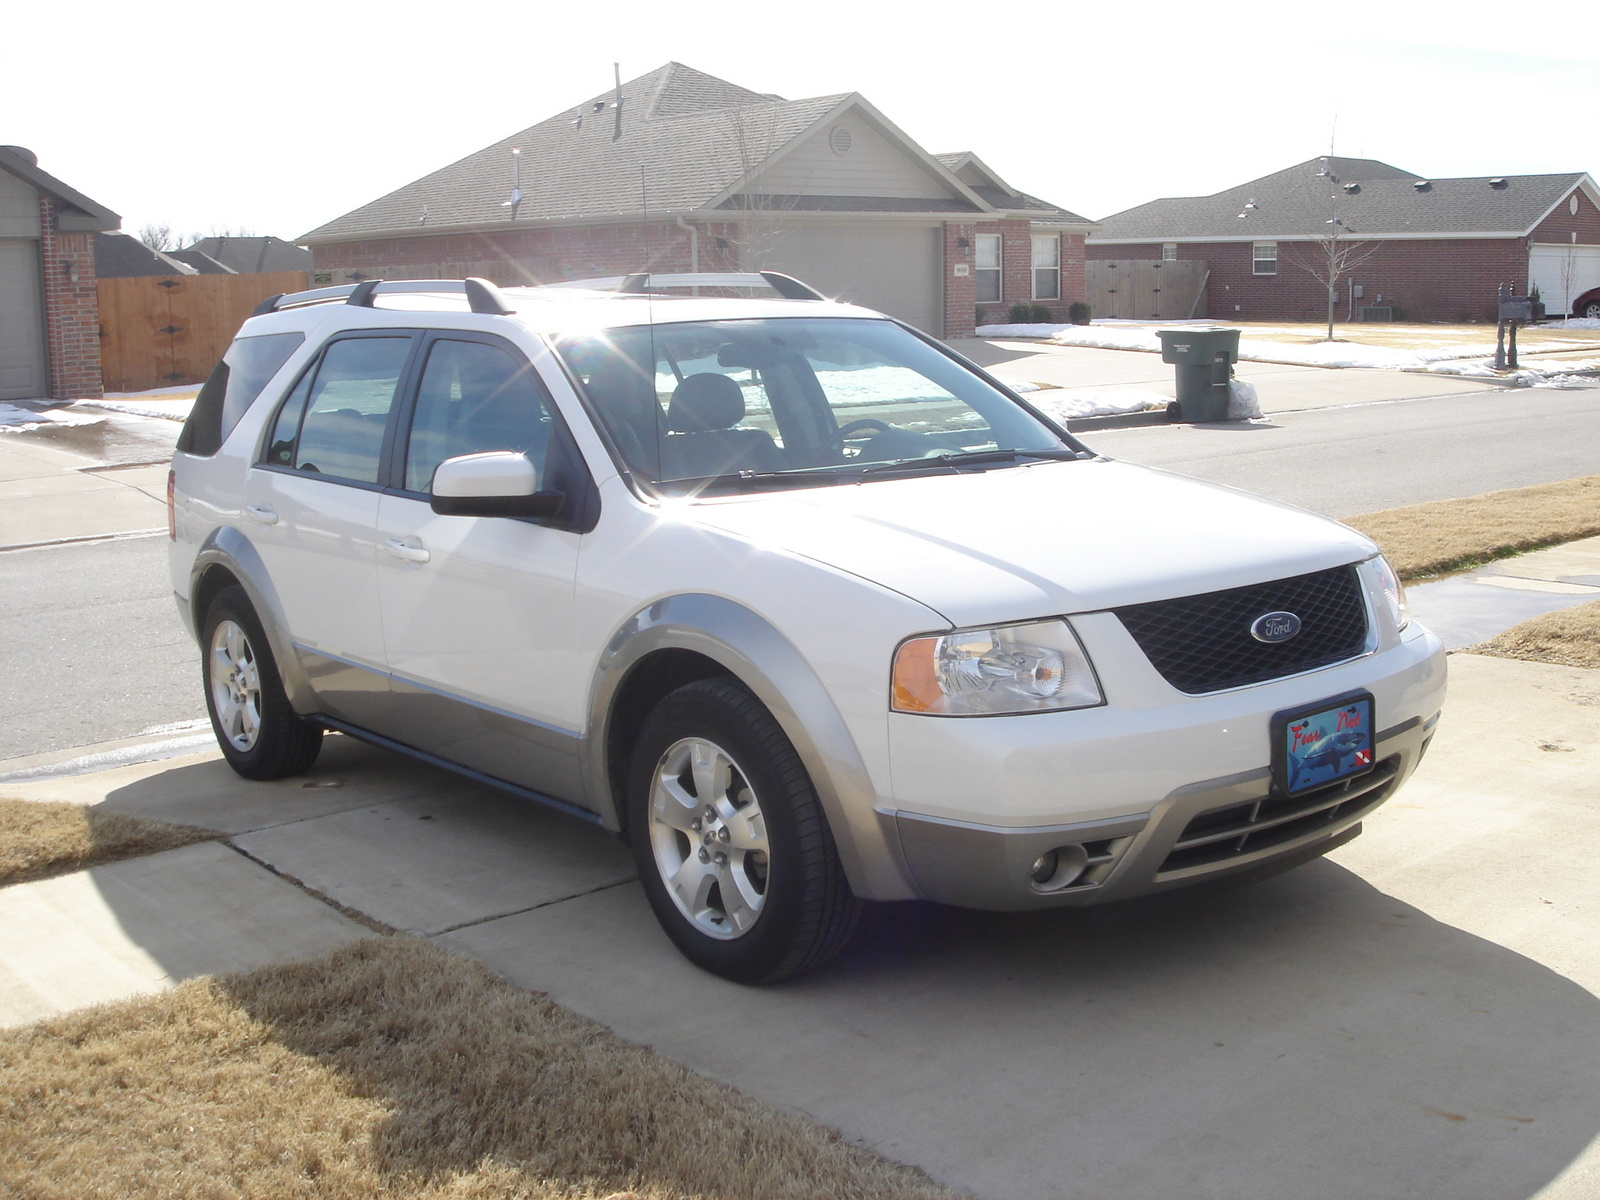 ford freestyle reviews The ford freestyle was introduced in the 2005 model year the vehicle was re-engineered with a new engine for the 2008 model year and renamed the ford taurus x in addition, electronic stability control was added as a standard feature beginning with the 2008 models.